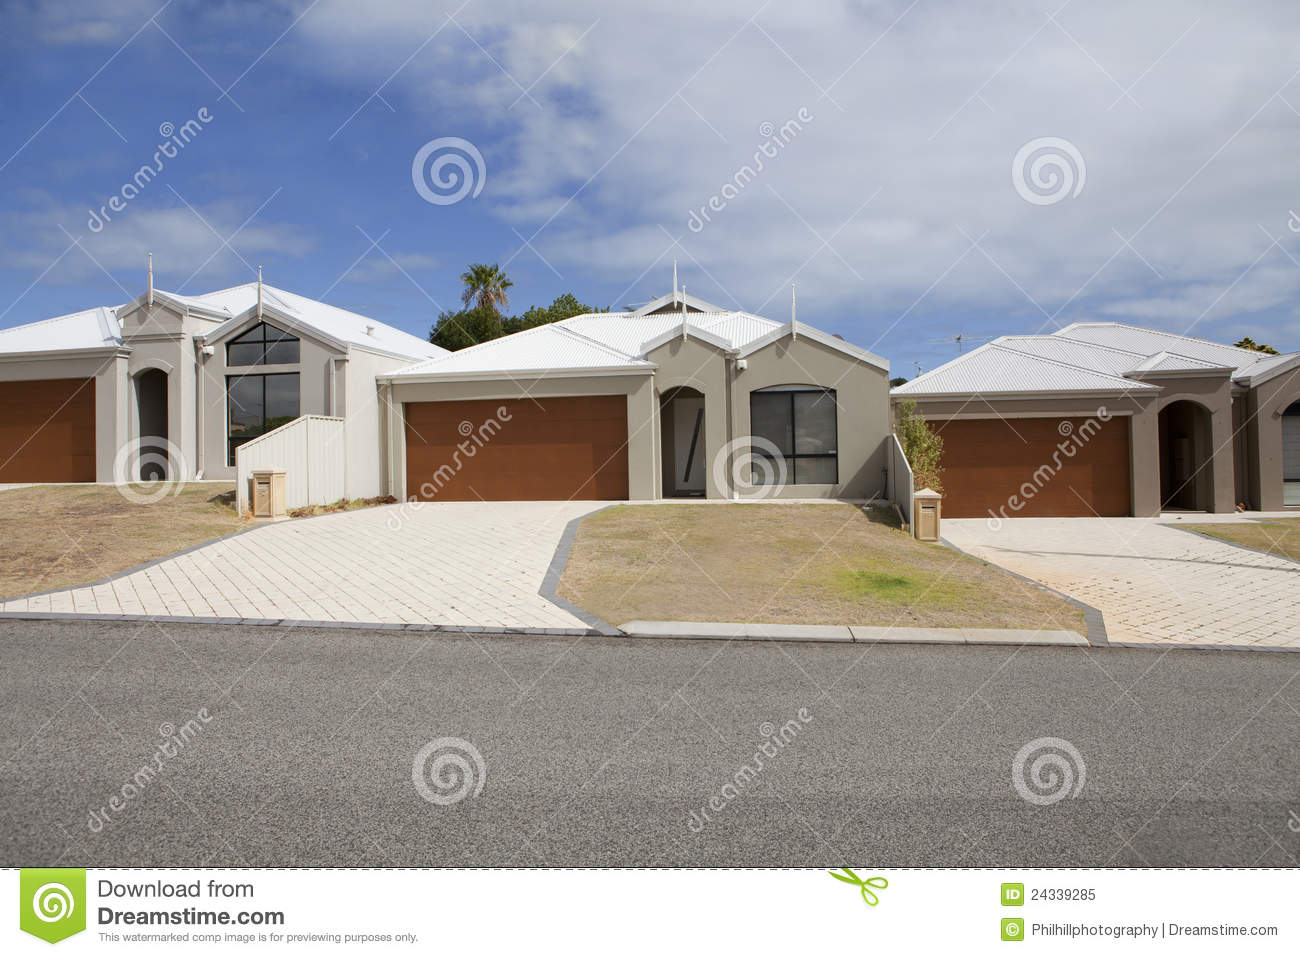 Similar Homes In A Line On A Street Off Scarborough Beach Road Perth